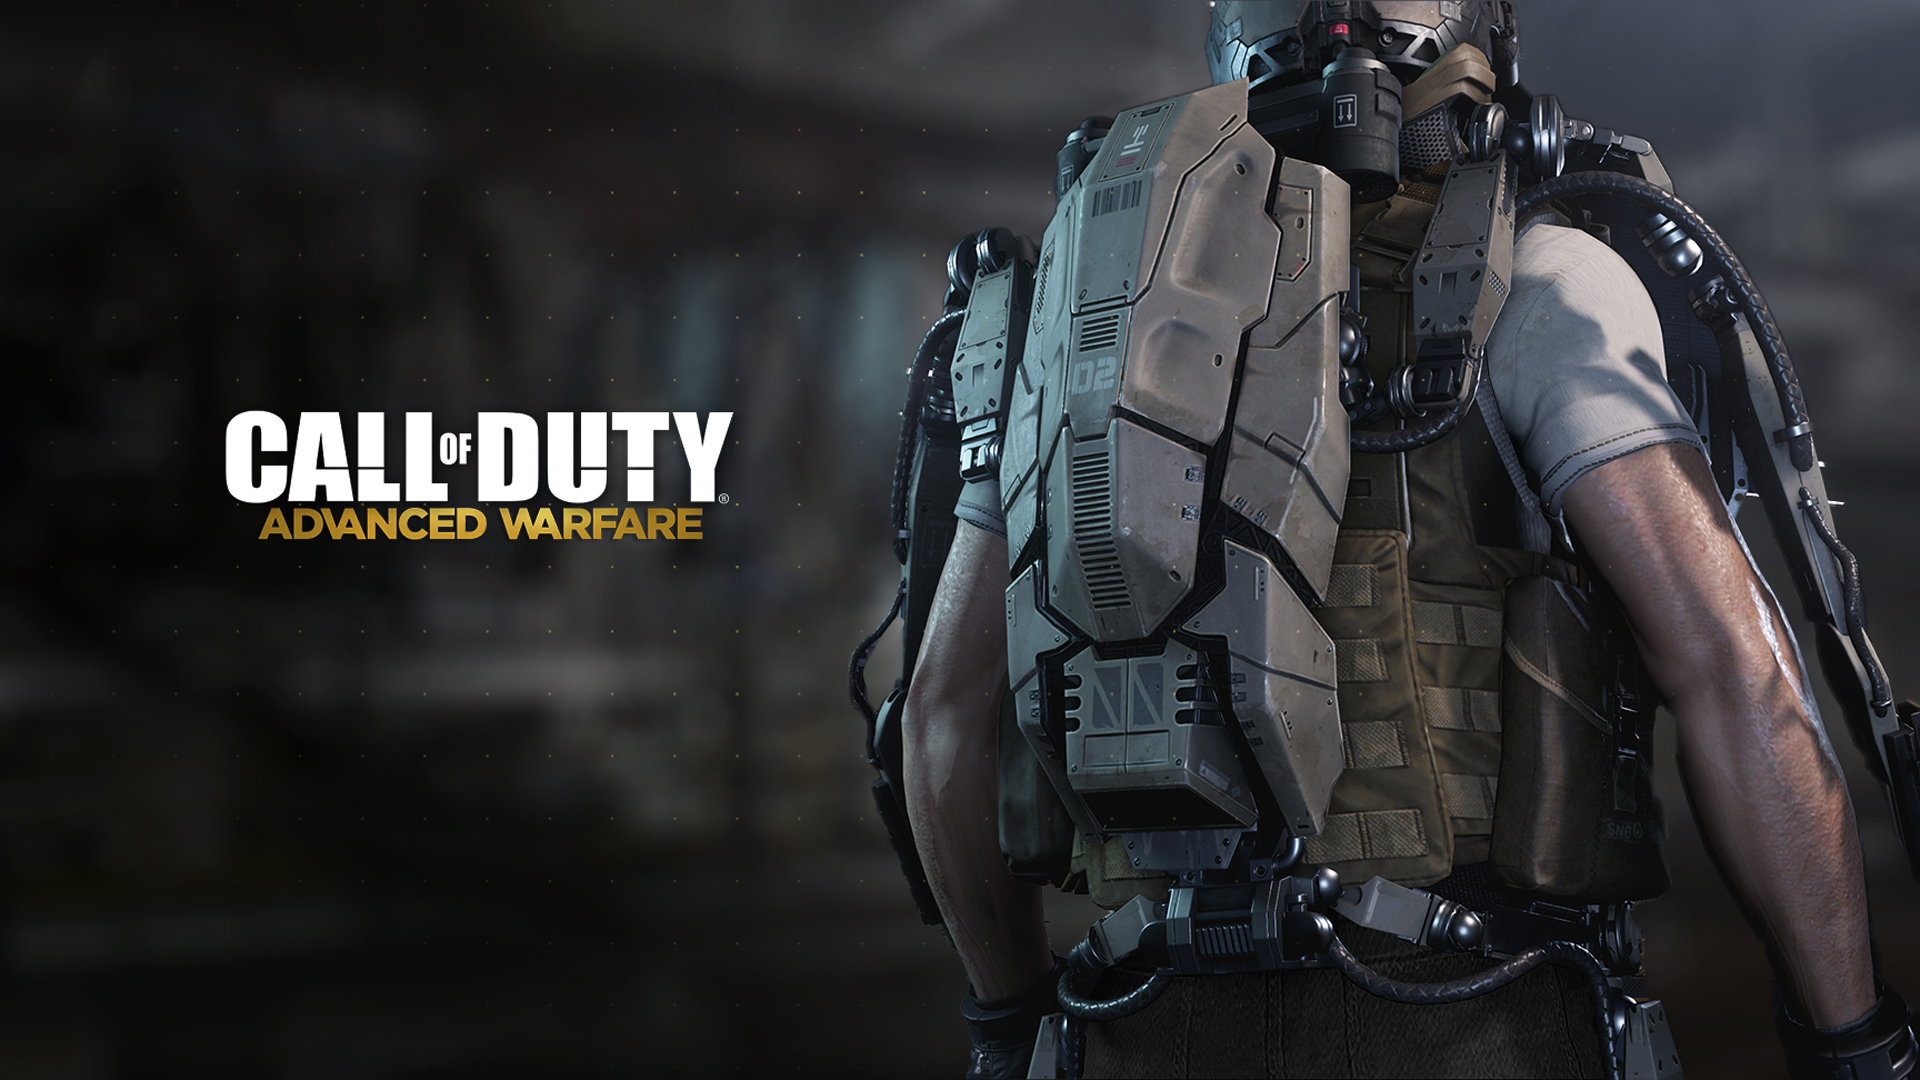 advanced warfare wallpaper 1080p